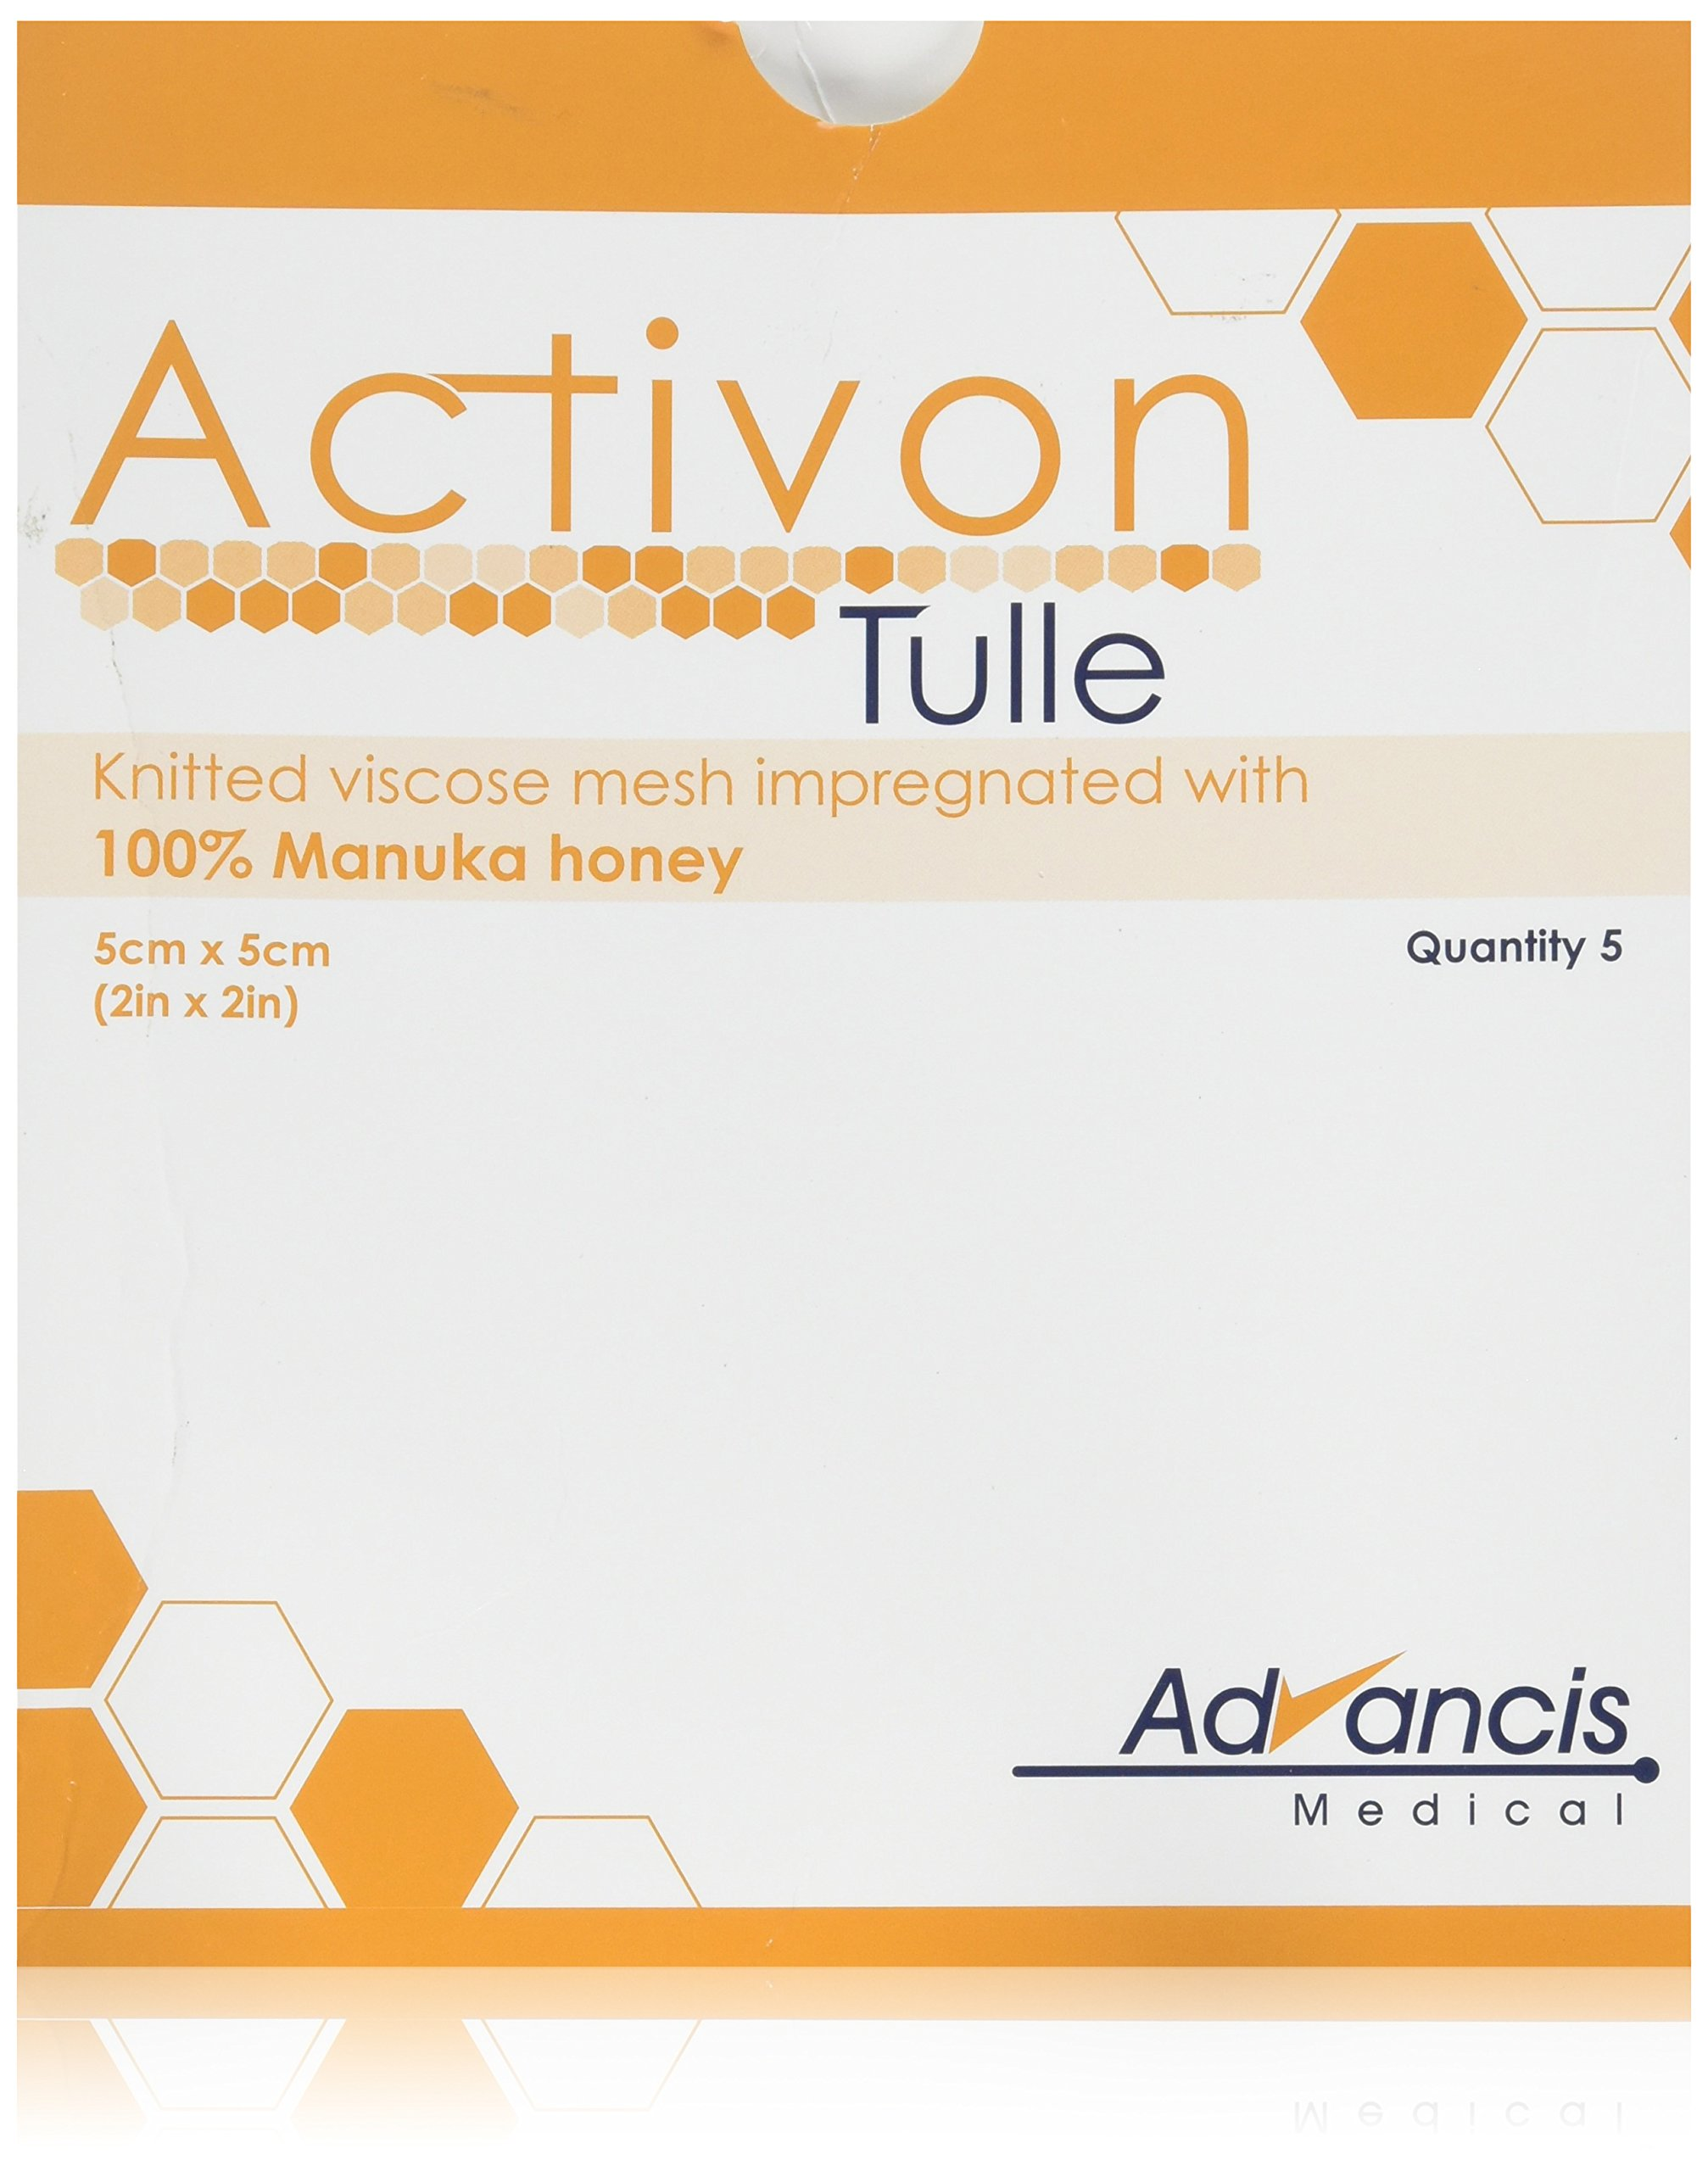 """Activon Tulle 4"""" Wound Dressing with 100% Manuka Honey (Pack of 3) 3.9 inch x 3.9 inch pad"""